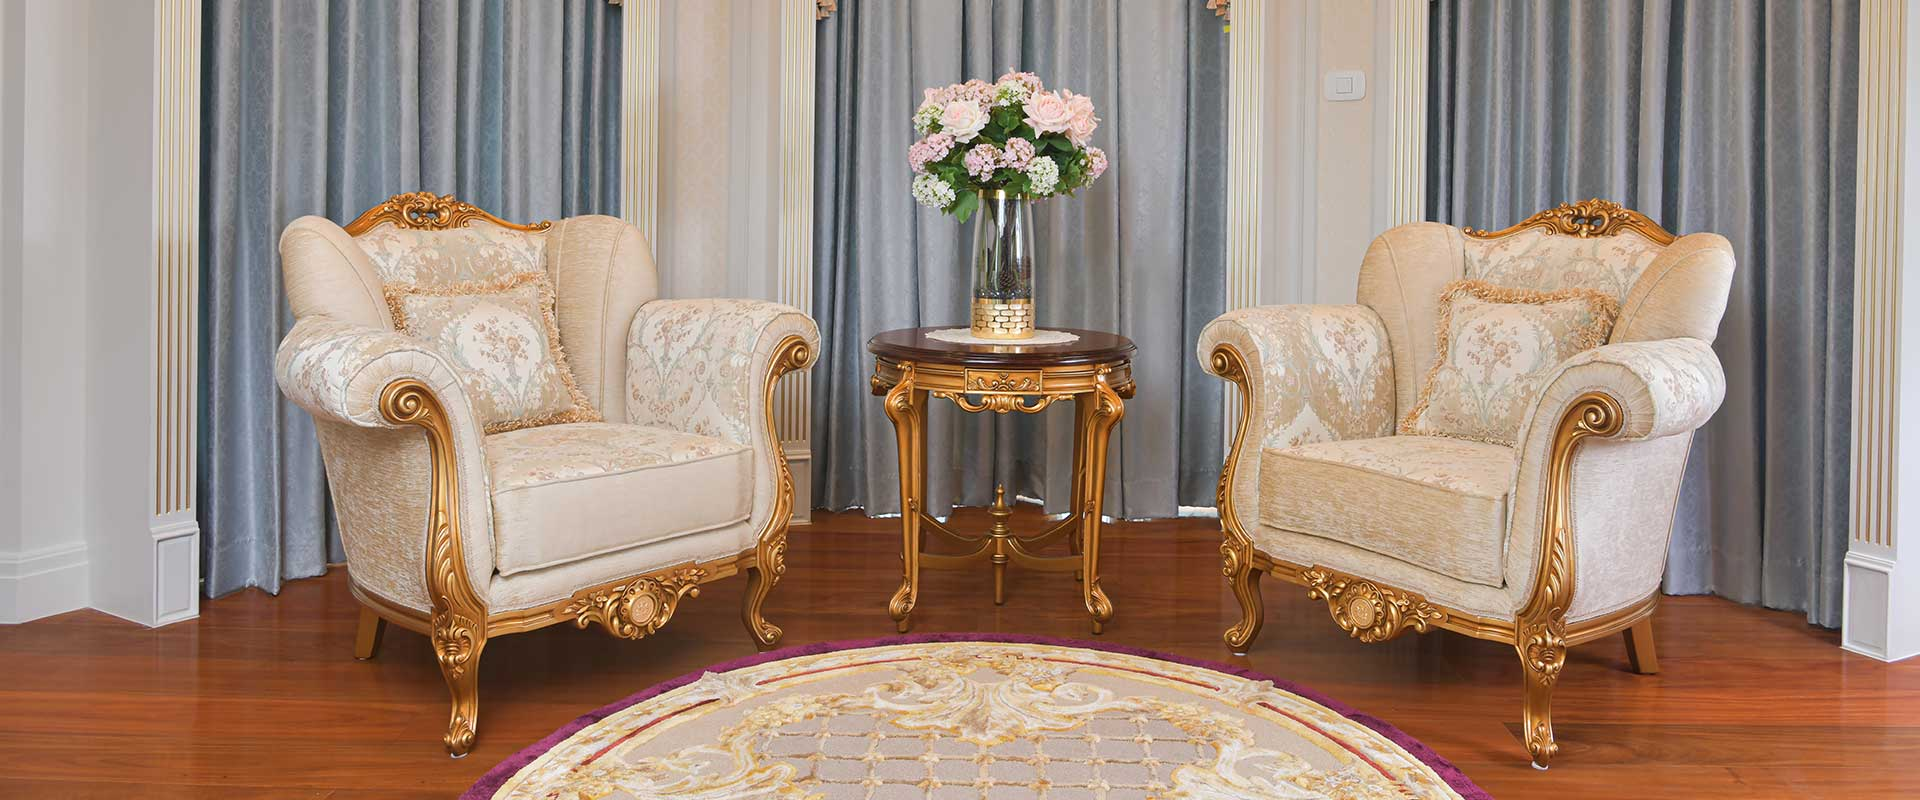 Italian Classic Luxury Furniture Furniture Manufacturer Deluxe Arte